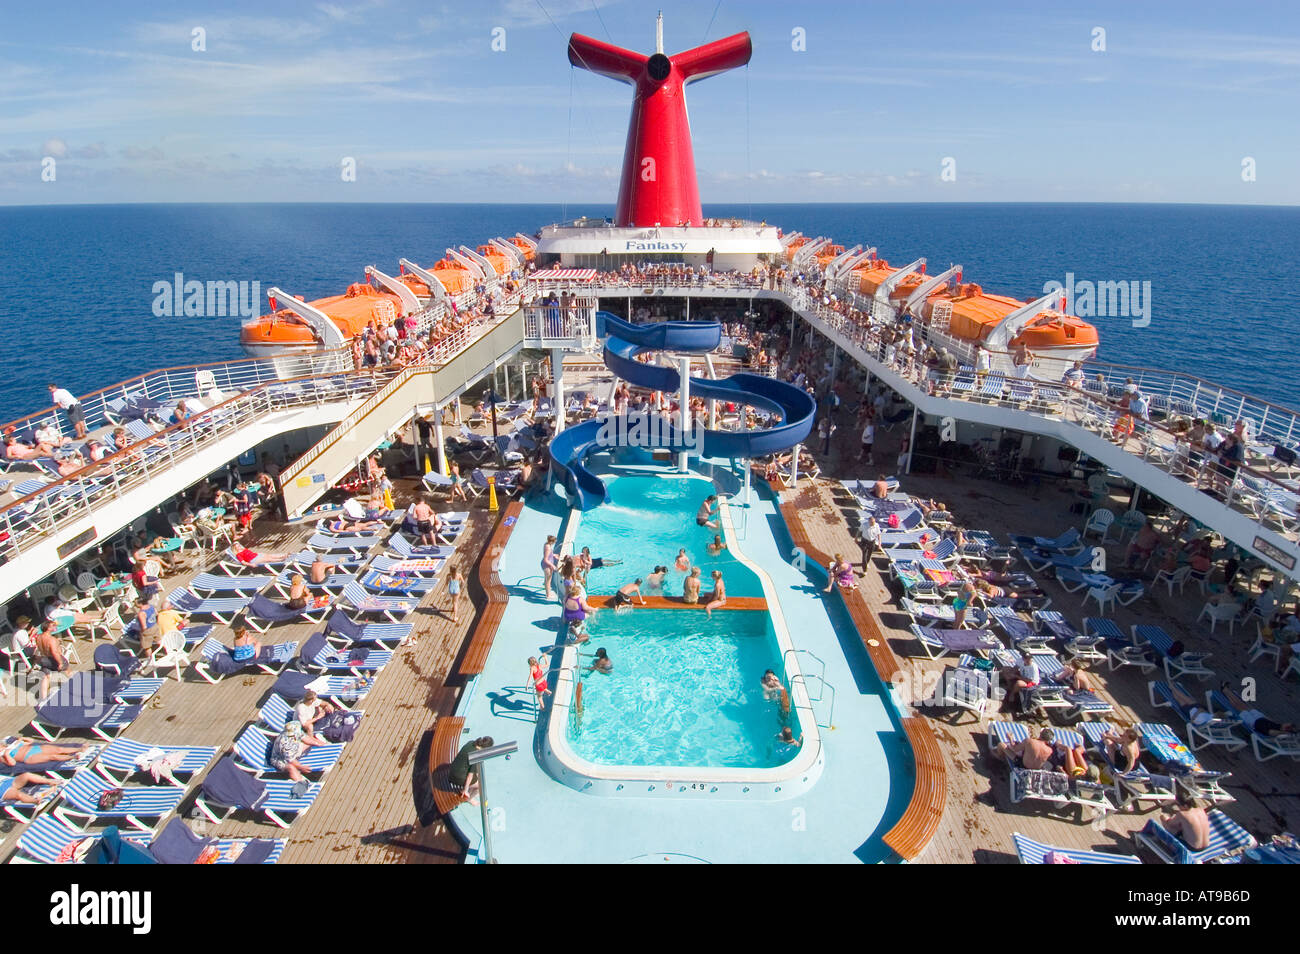 Family Activities Aboard The Carnival Cruise Ship Fantasy